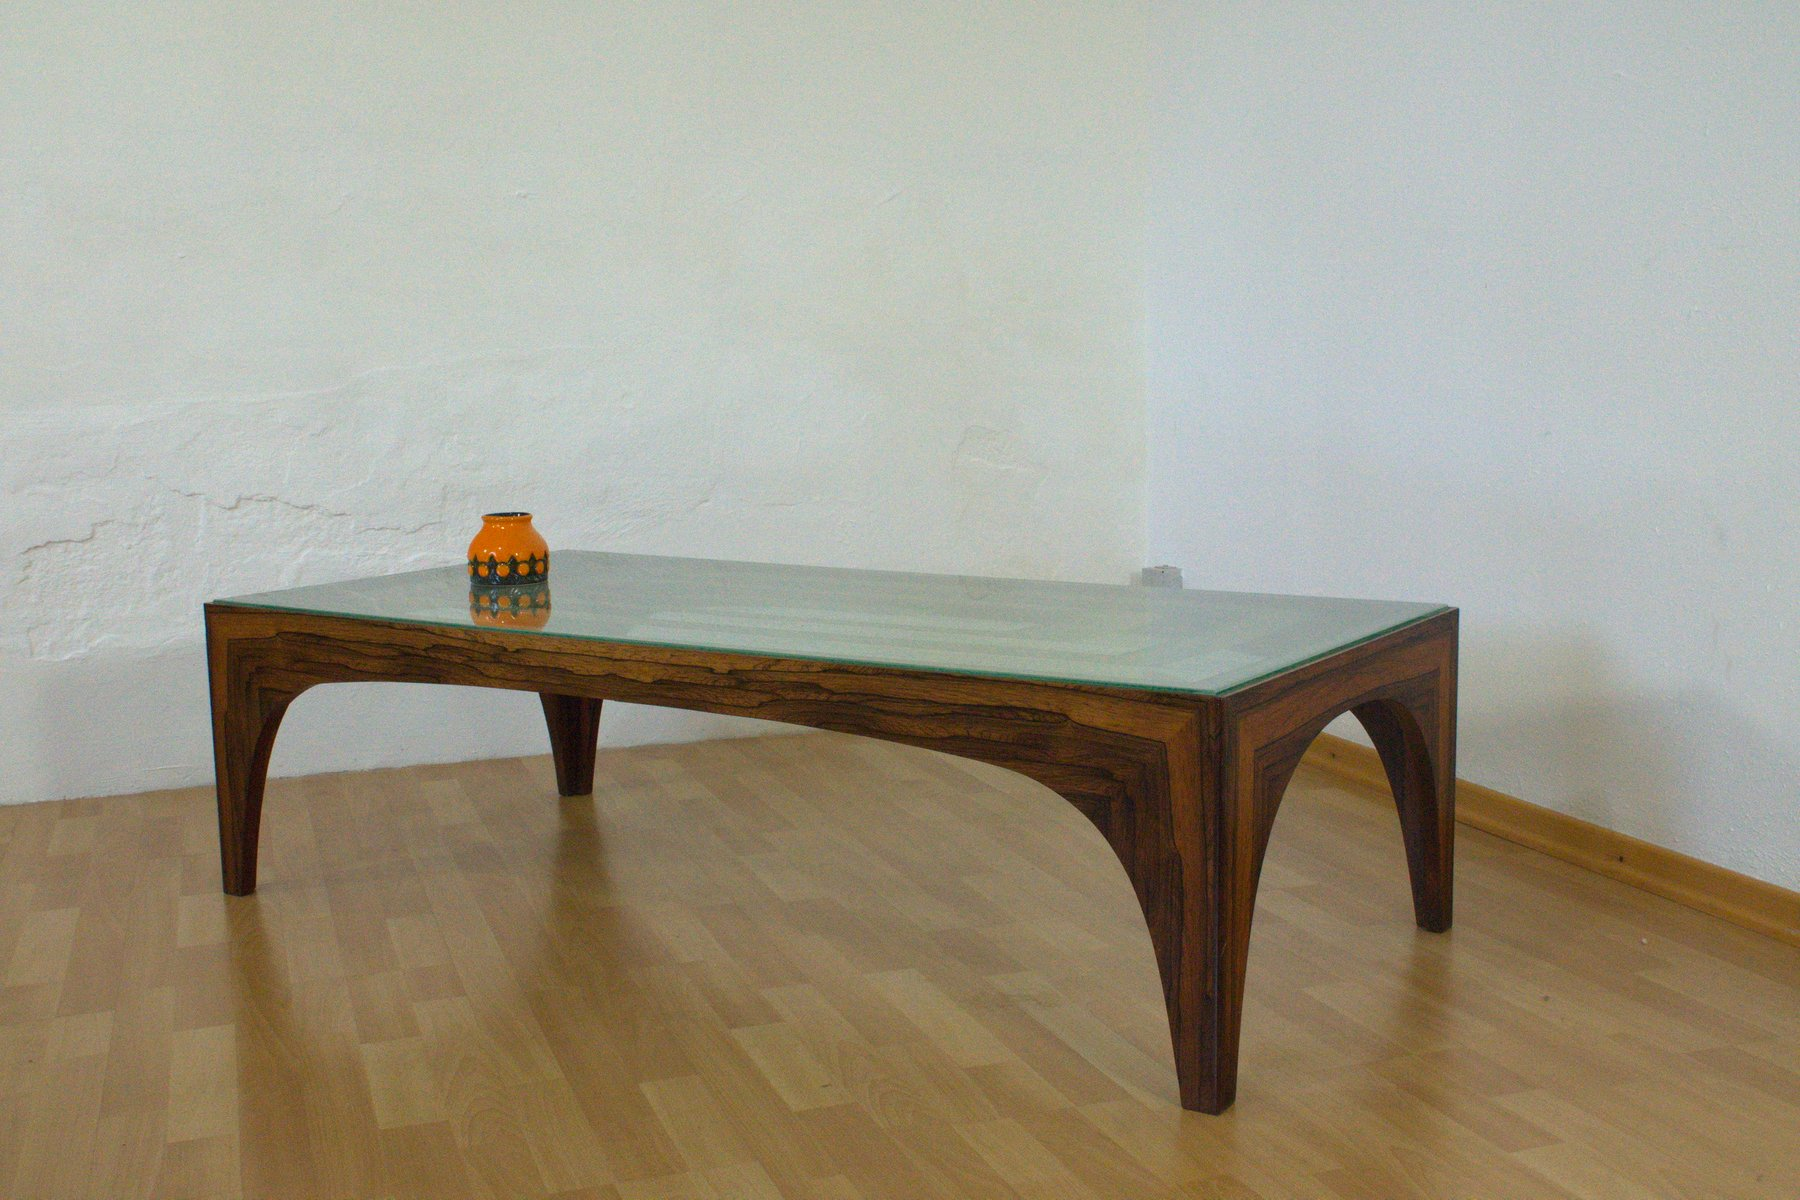 Vintage Rosewood Coffee Table with Etched Glass Top 1960s for